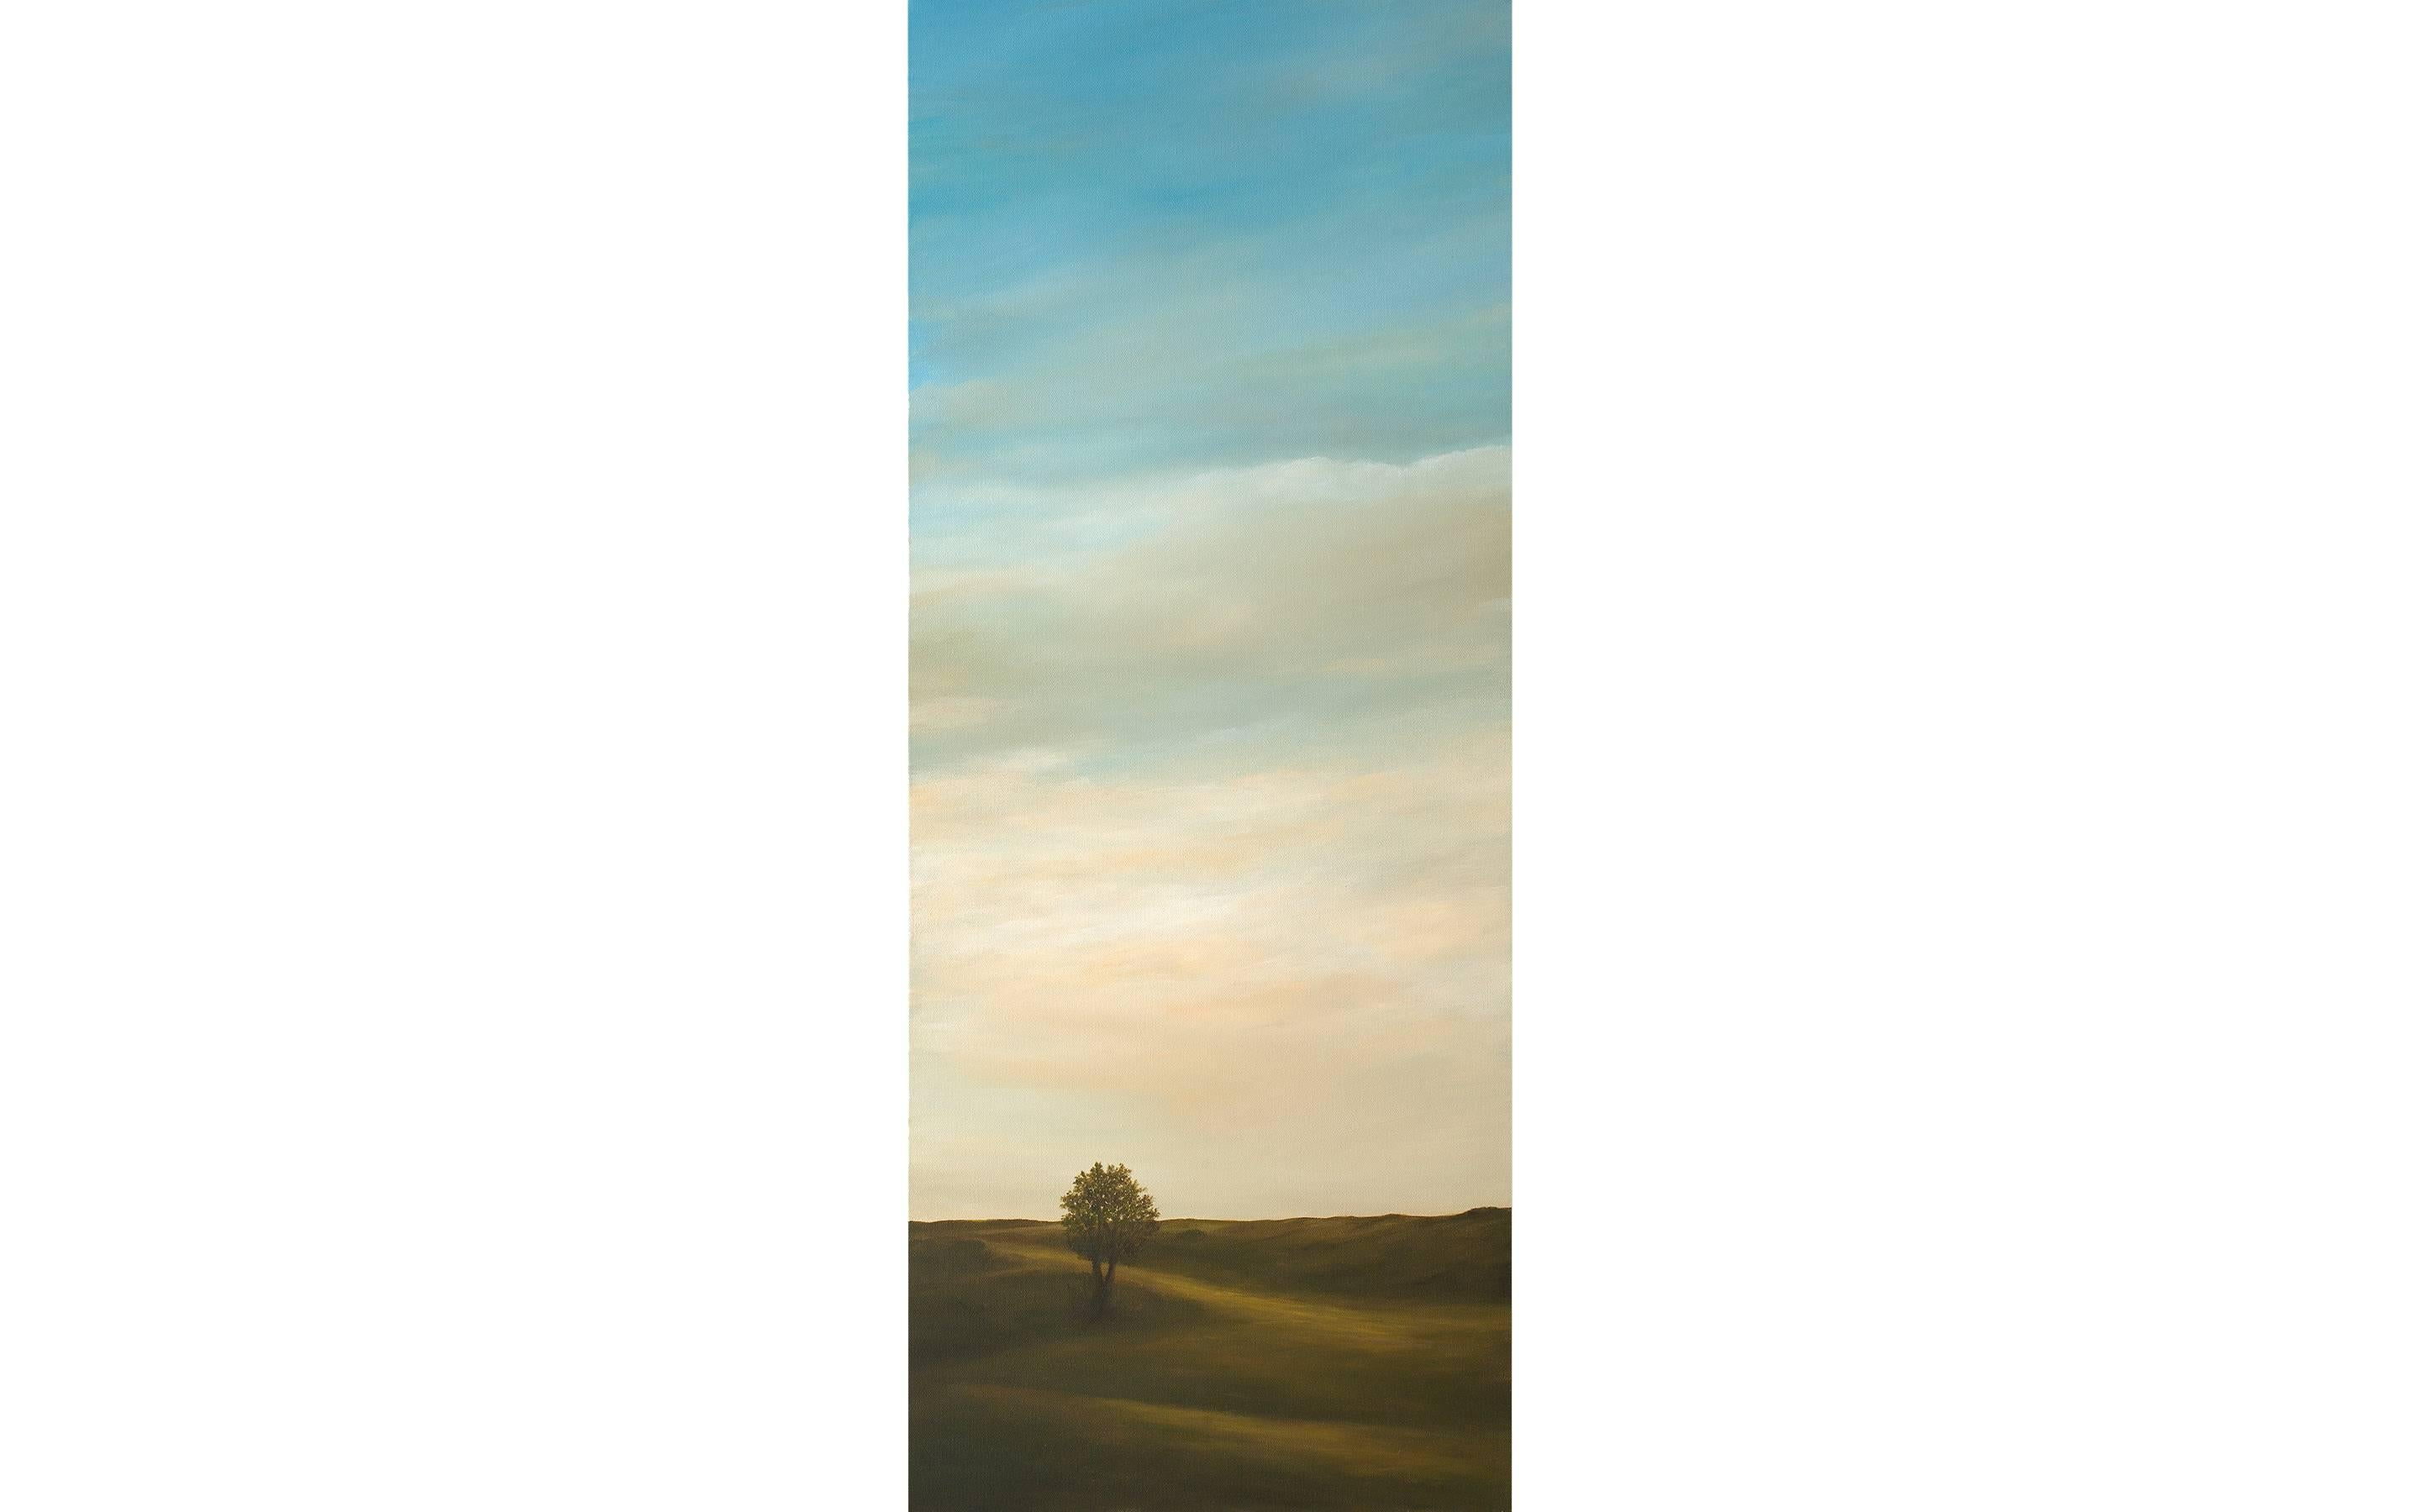 The Promise of Autumn, Serene Landscape with Lone Tree and Vast Sky, Framed